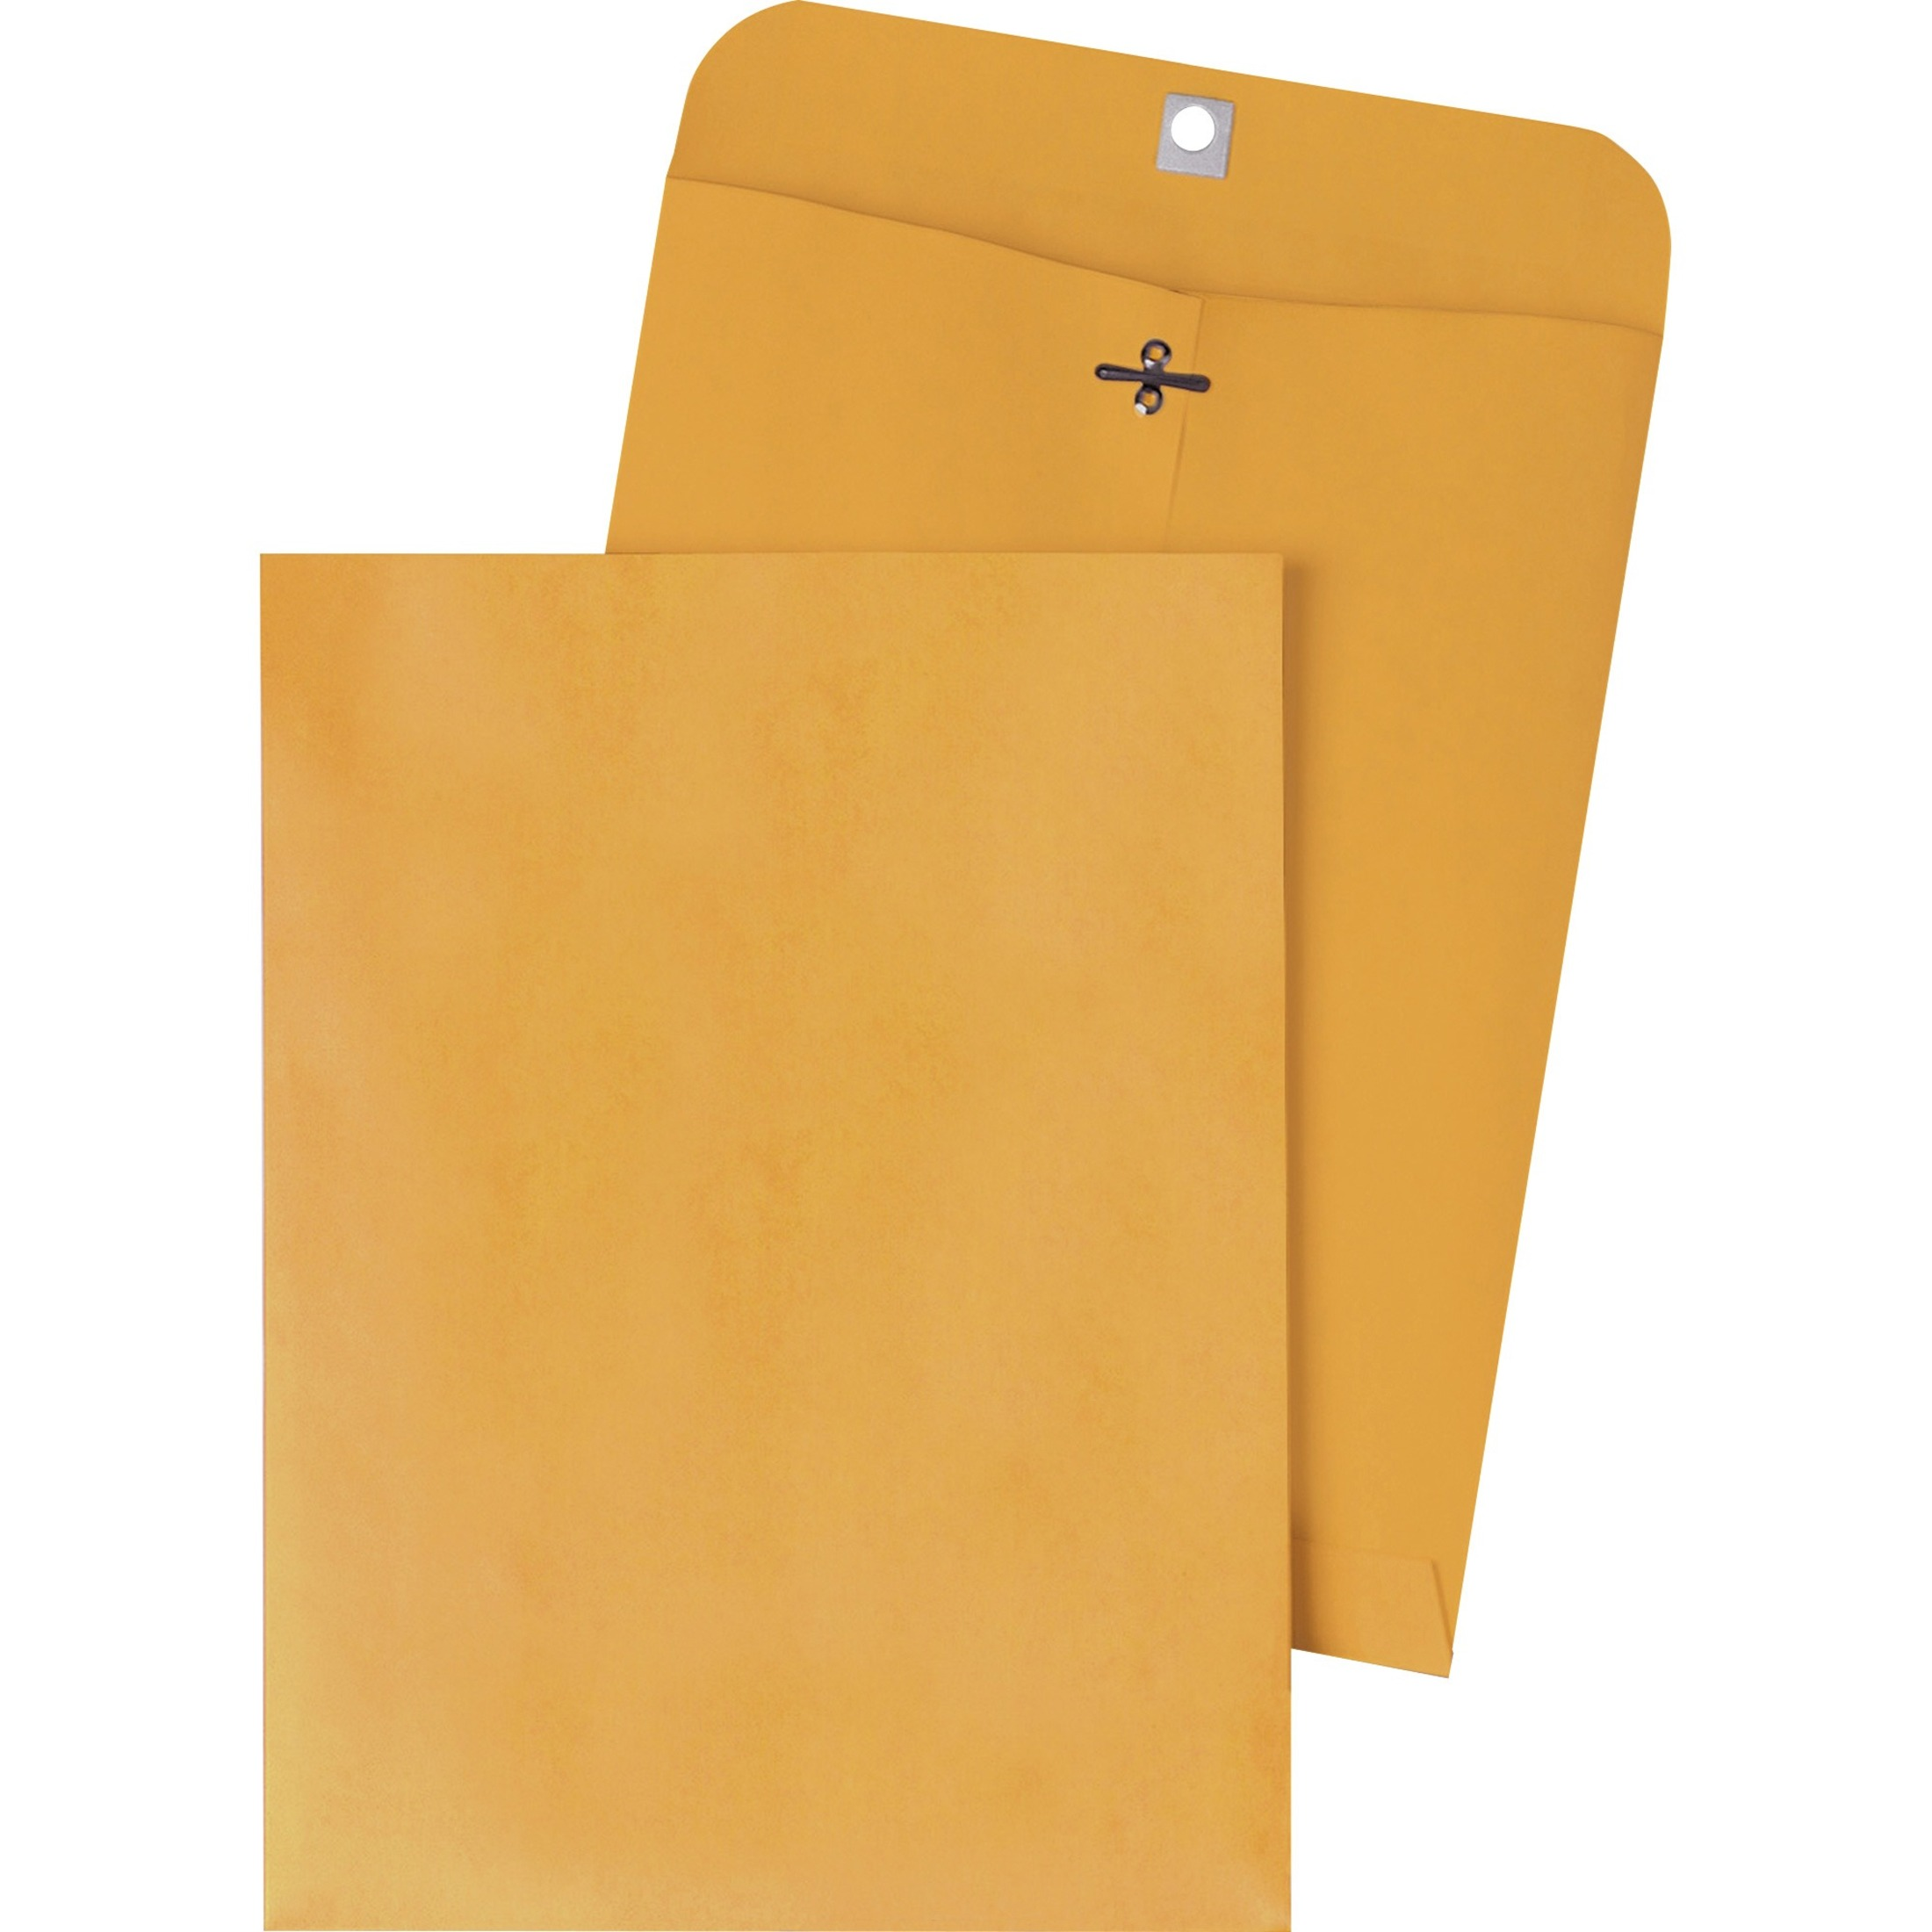 Clasp Envelope, 9 1/4 x 14 1/2, 28lb, Brown Kraft, 100/Box